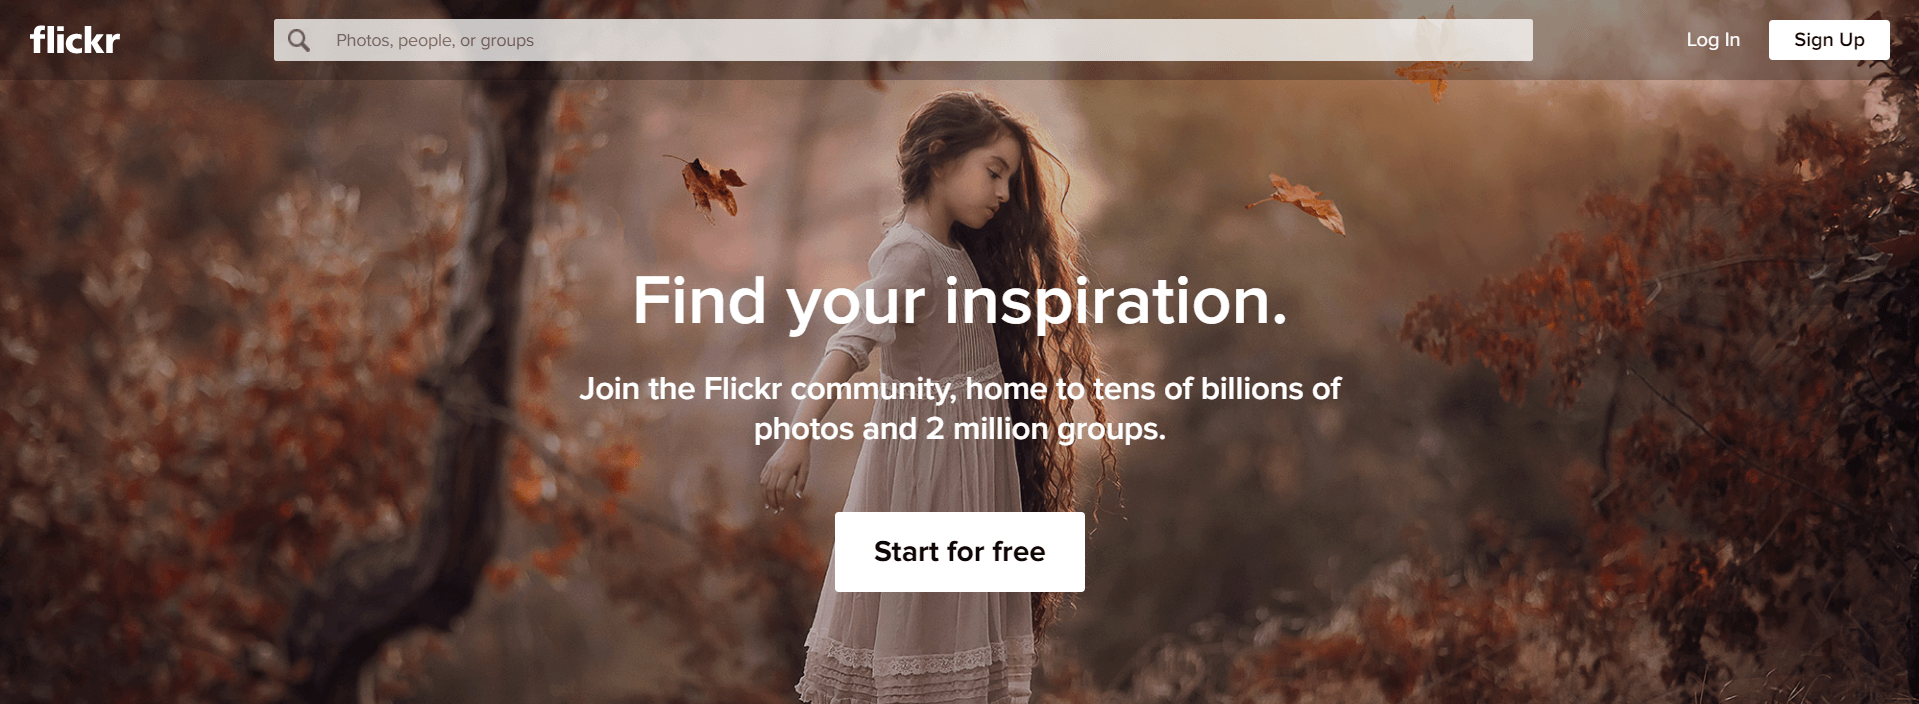 Flickr - Best Image and Video Sharing Site